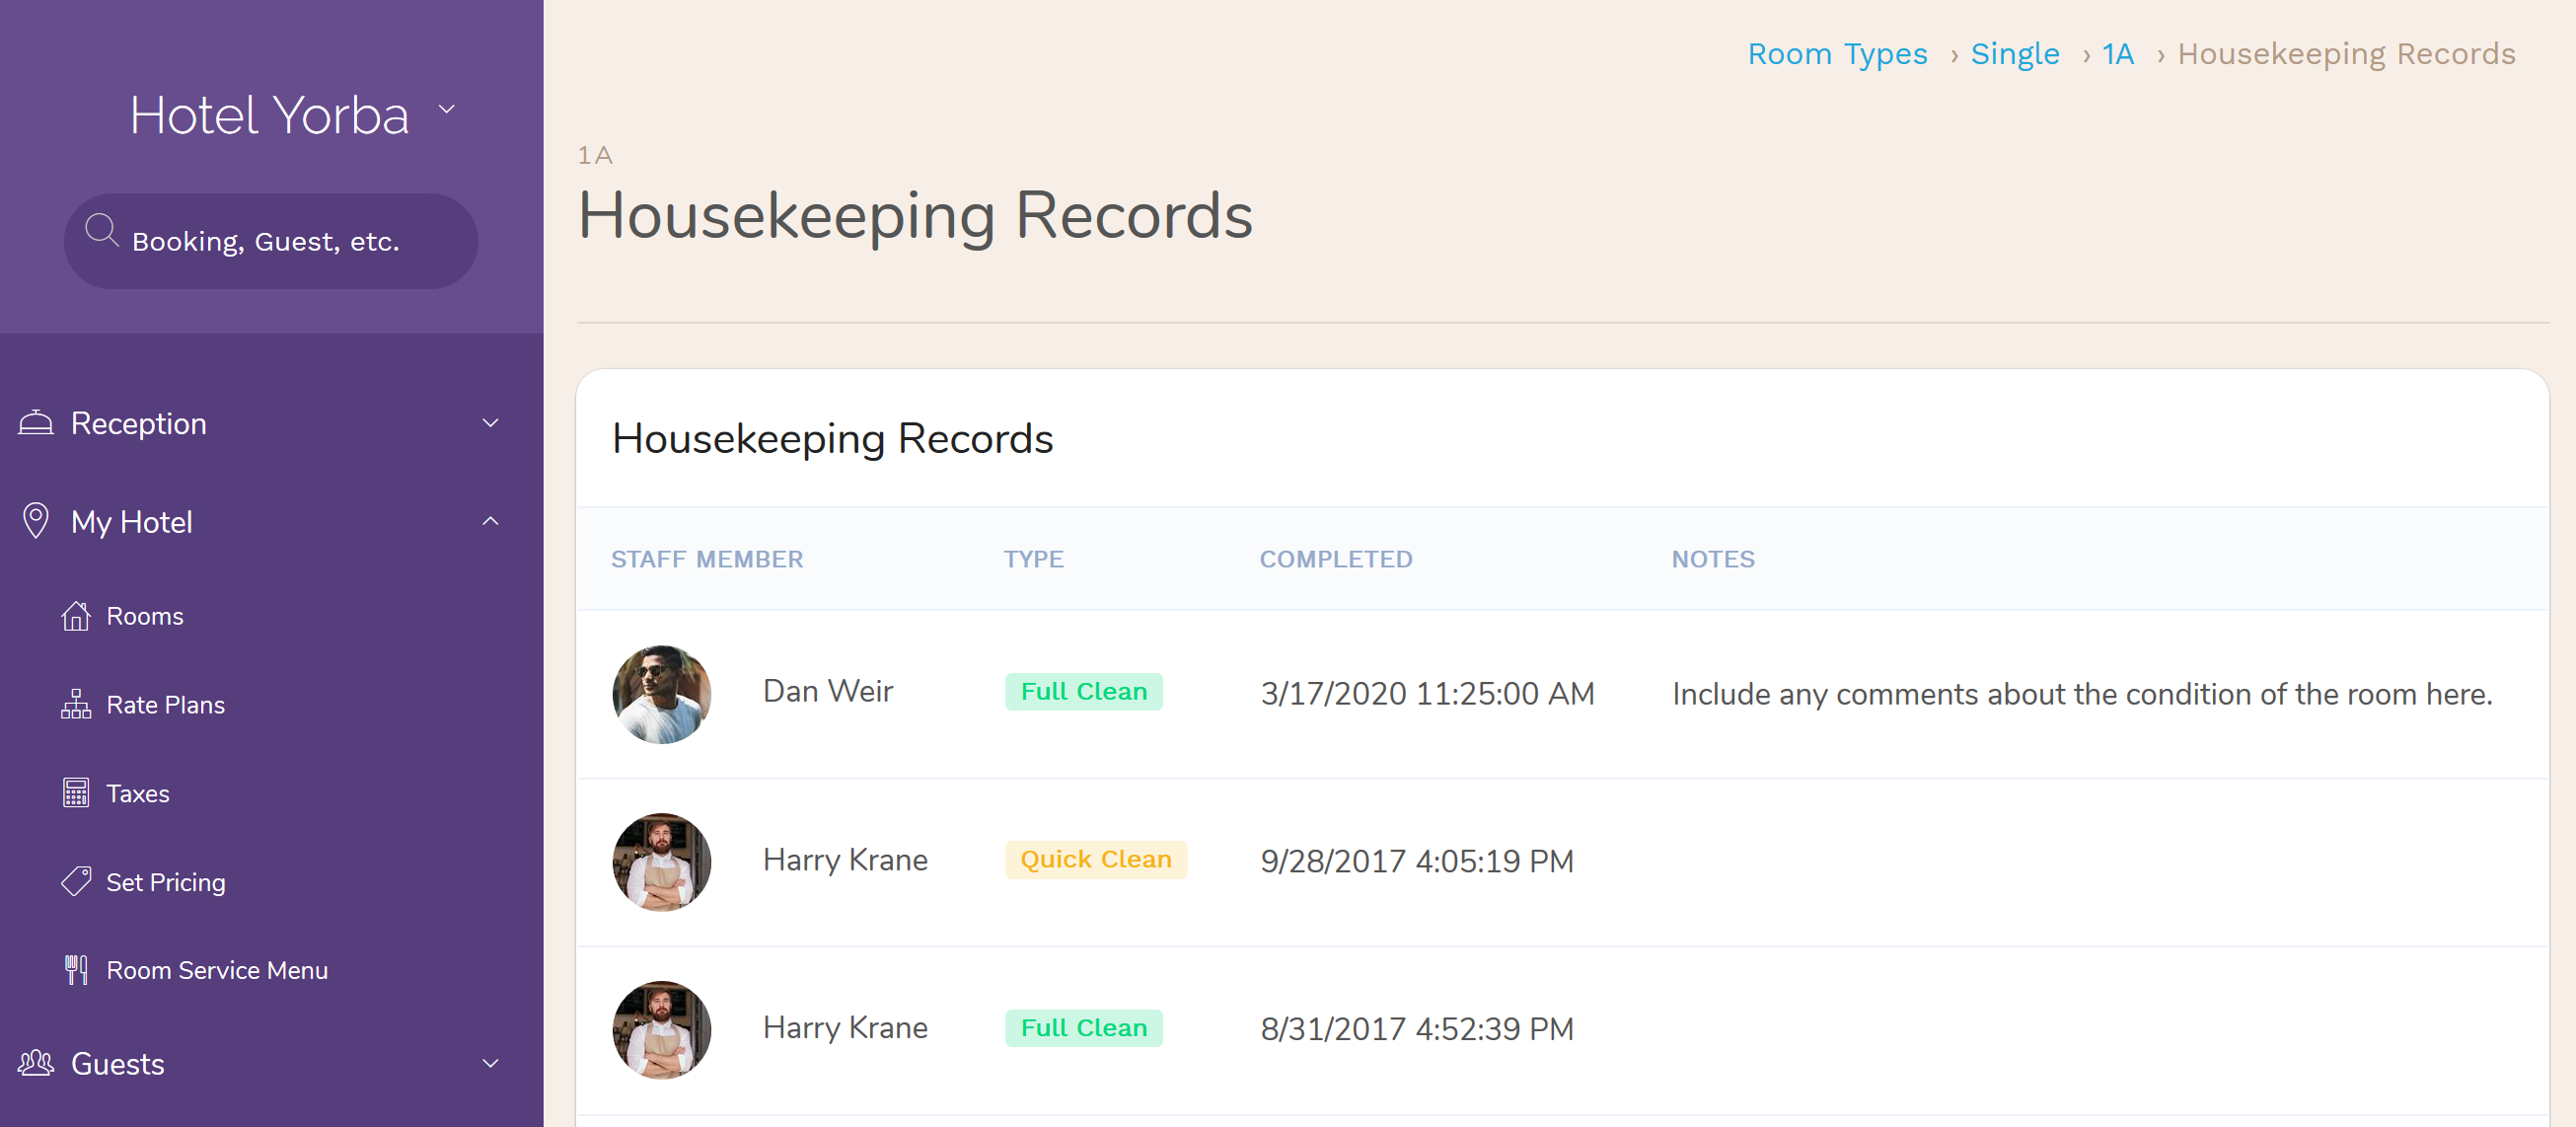 On the room details page, click 'View Hotel Housekeeping Records' to view the full history for this room. Here you have the full housekeeping history for this room.